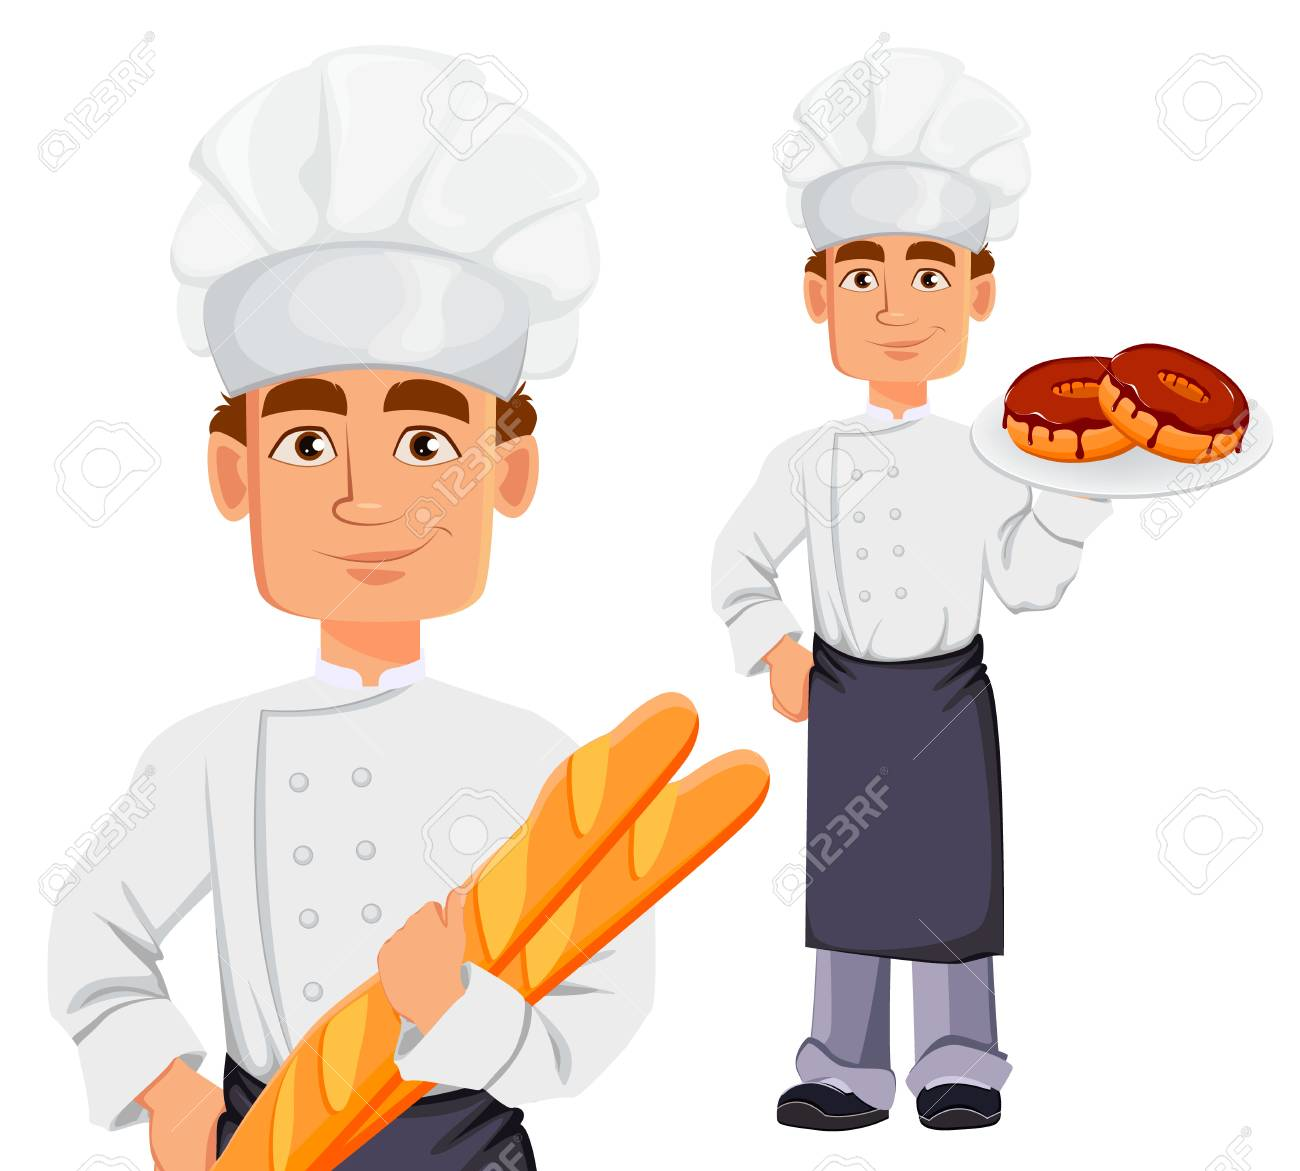 Handsome baker in professional uniform and chef hat, set. Cheerful cartoon character holding baguette and holding donuts. Vector illustration on white background. - 102420118